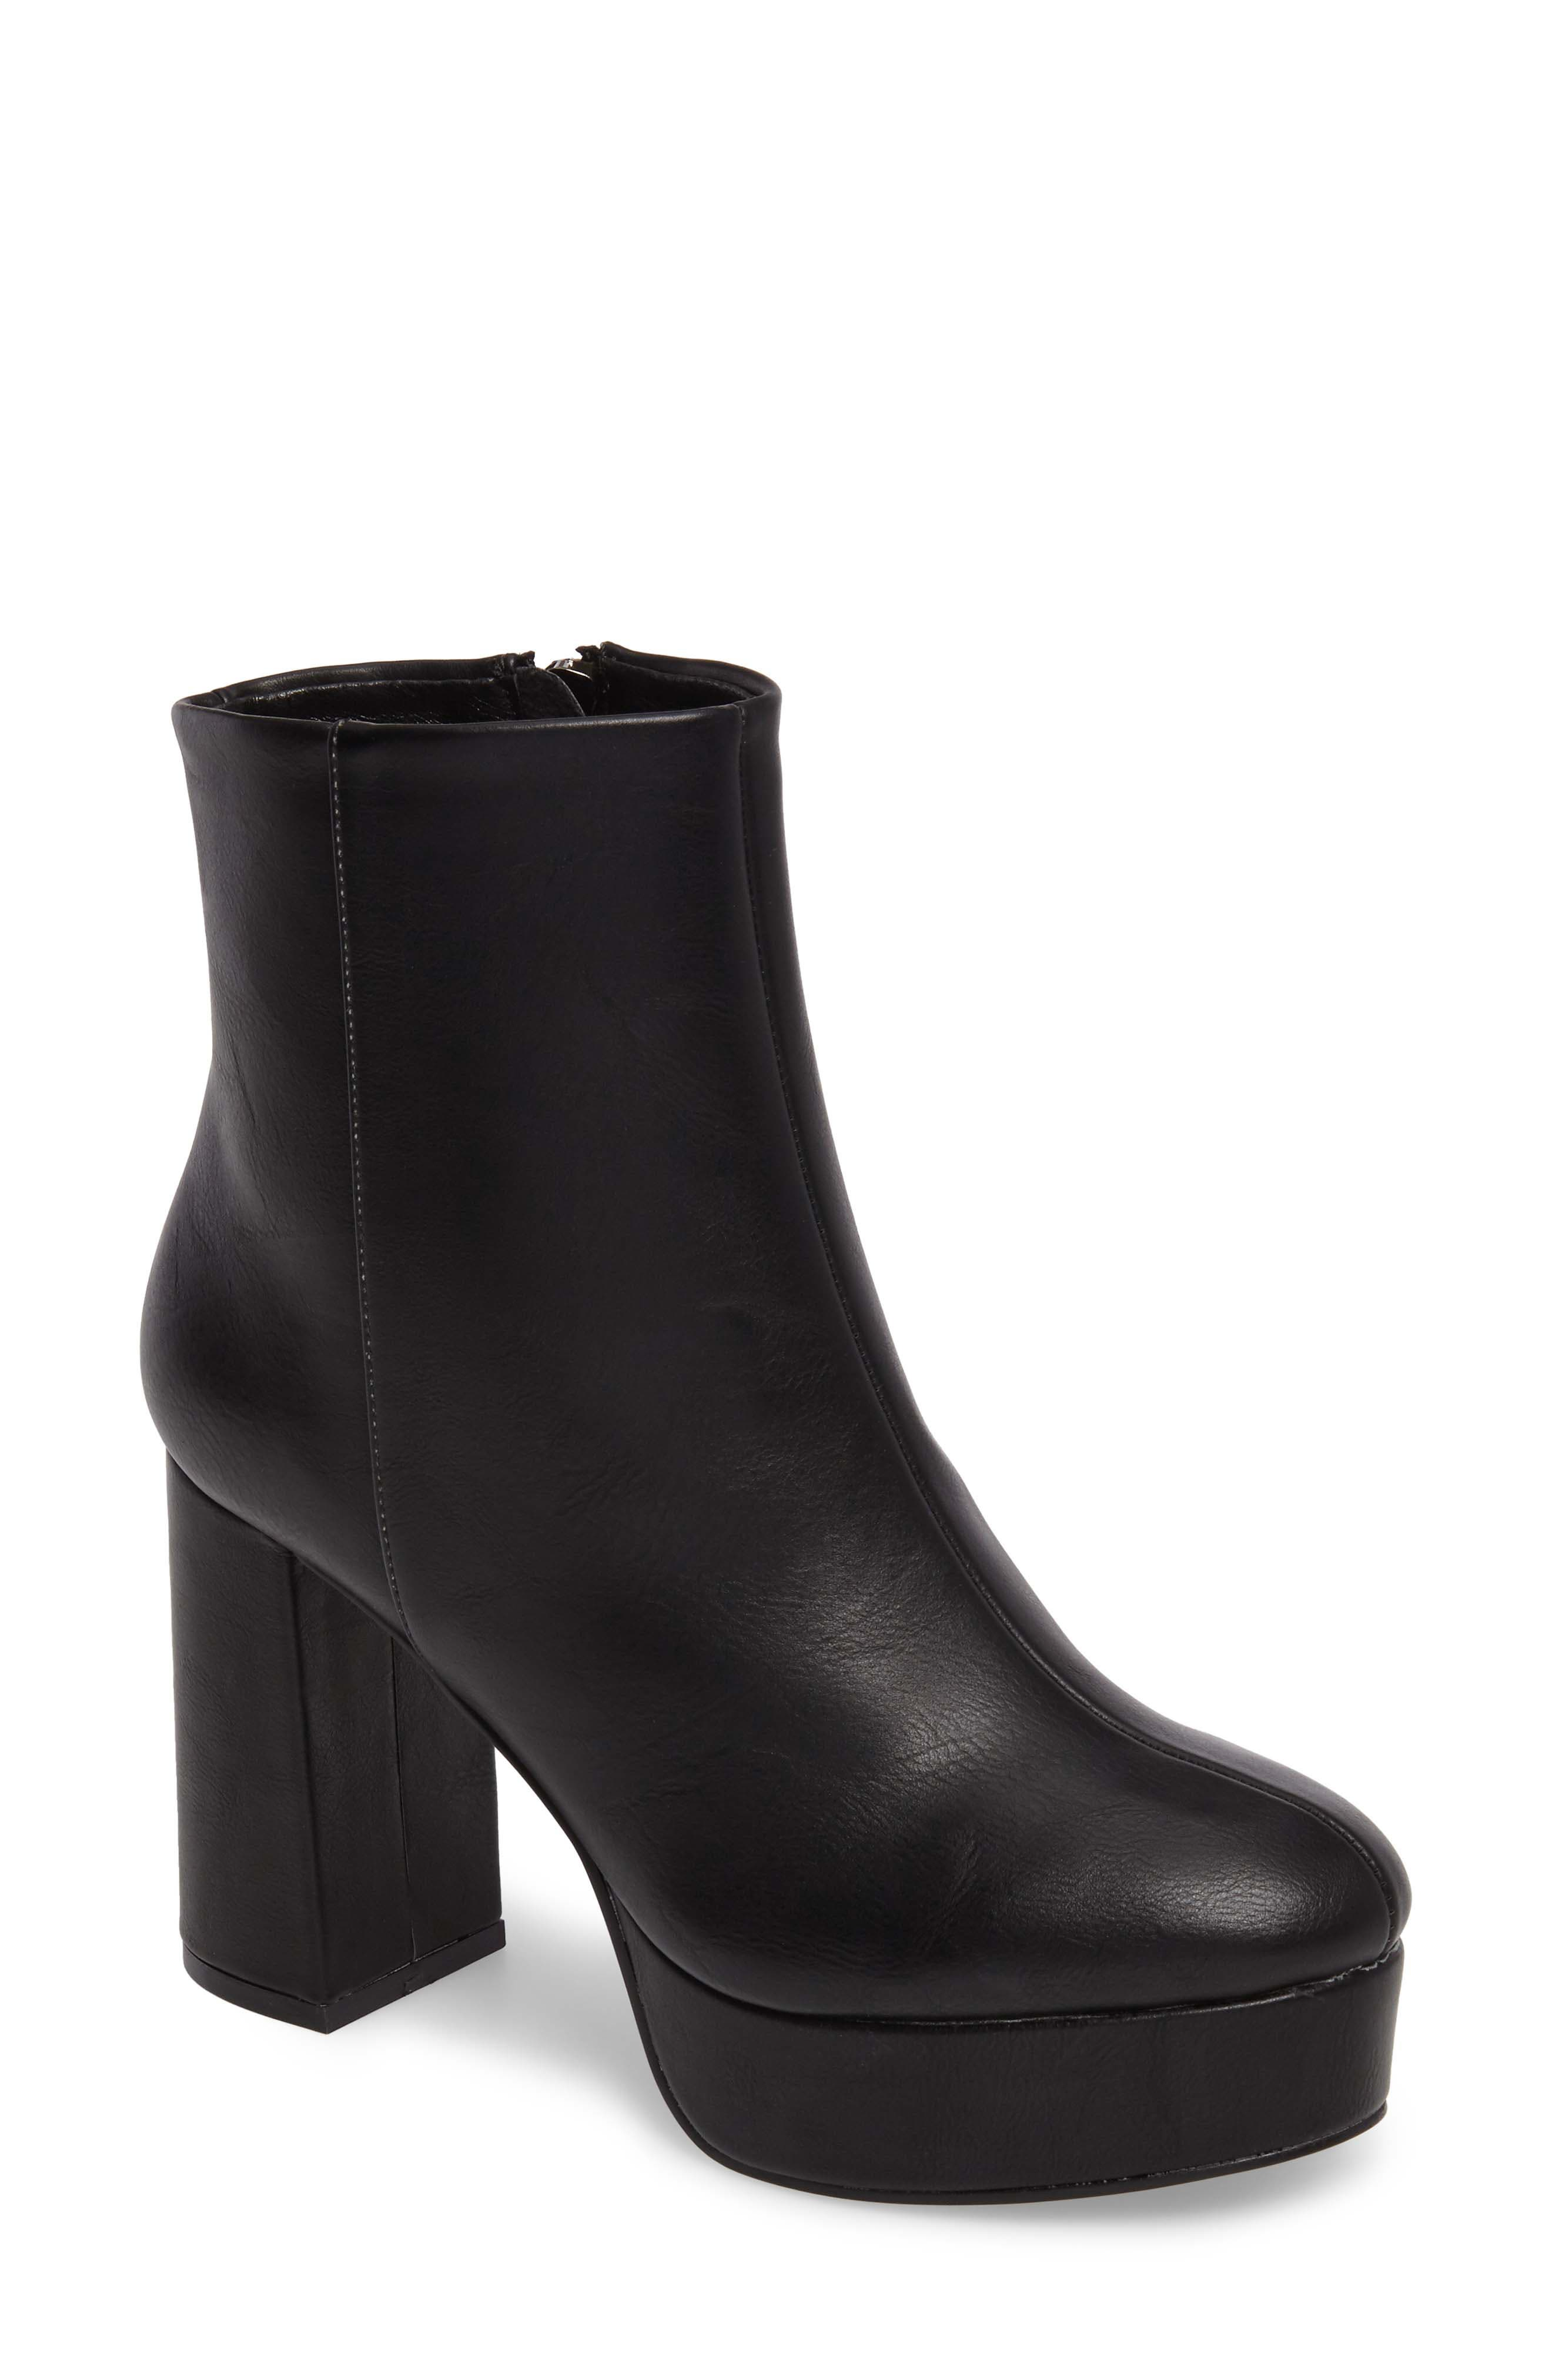 Nenna Platform Bootie,                         Main,                         color, Black